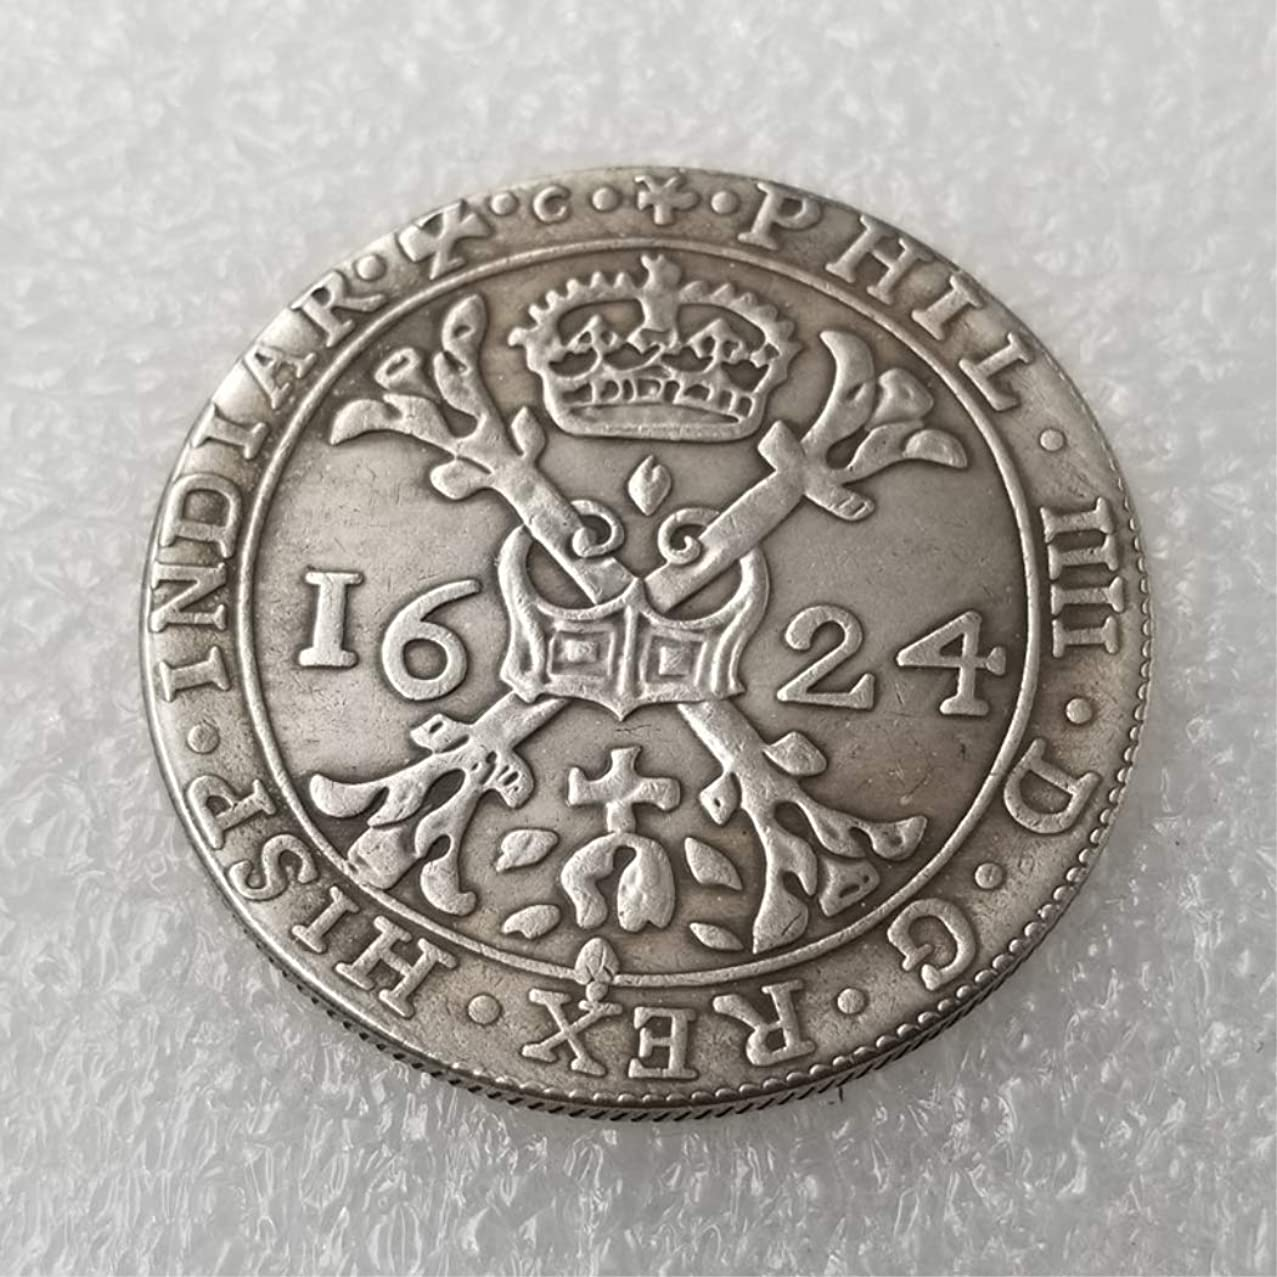 MarshLing 1624 Netherlands Old Coin- Netherlands Commemorative Coin -Old Uncirculated Coin-Great Old Netherlands Coins - Discover History of Coins Perfect Quality